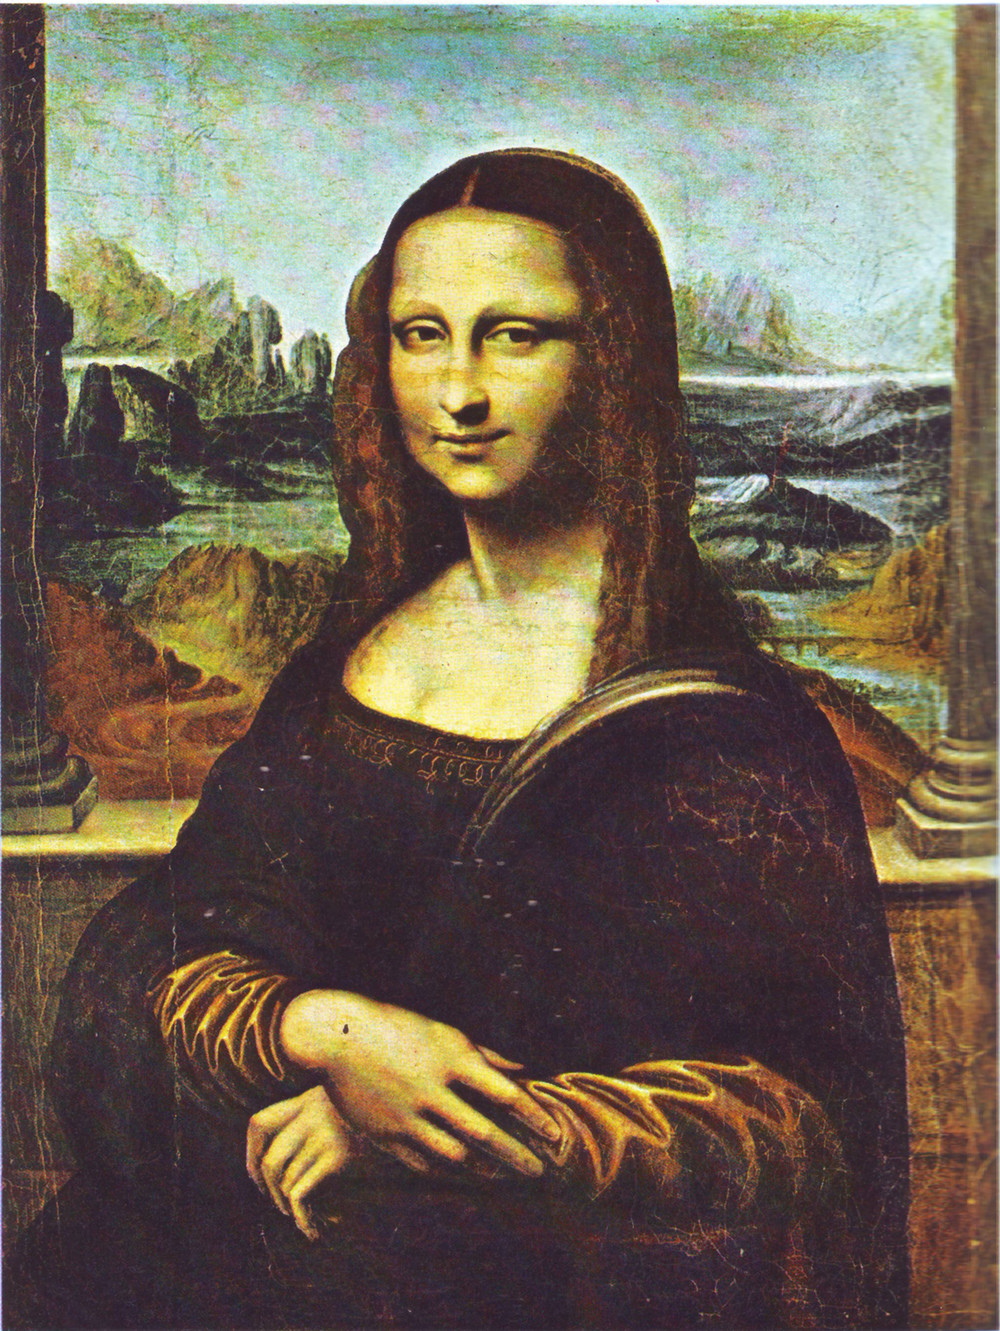 Mona_Lisa_(copy,_Walters_Art_Gallery).JPG